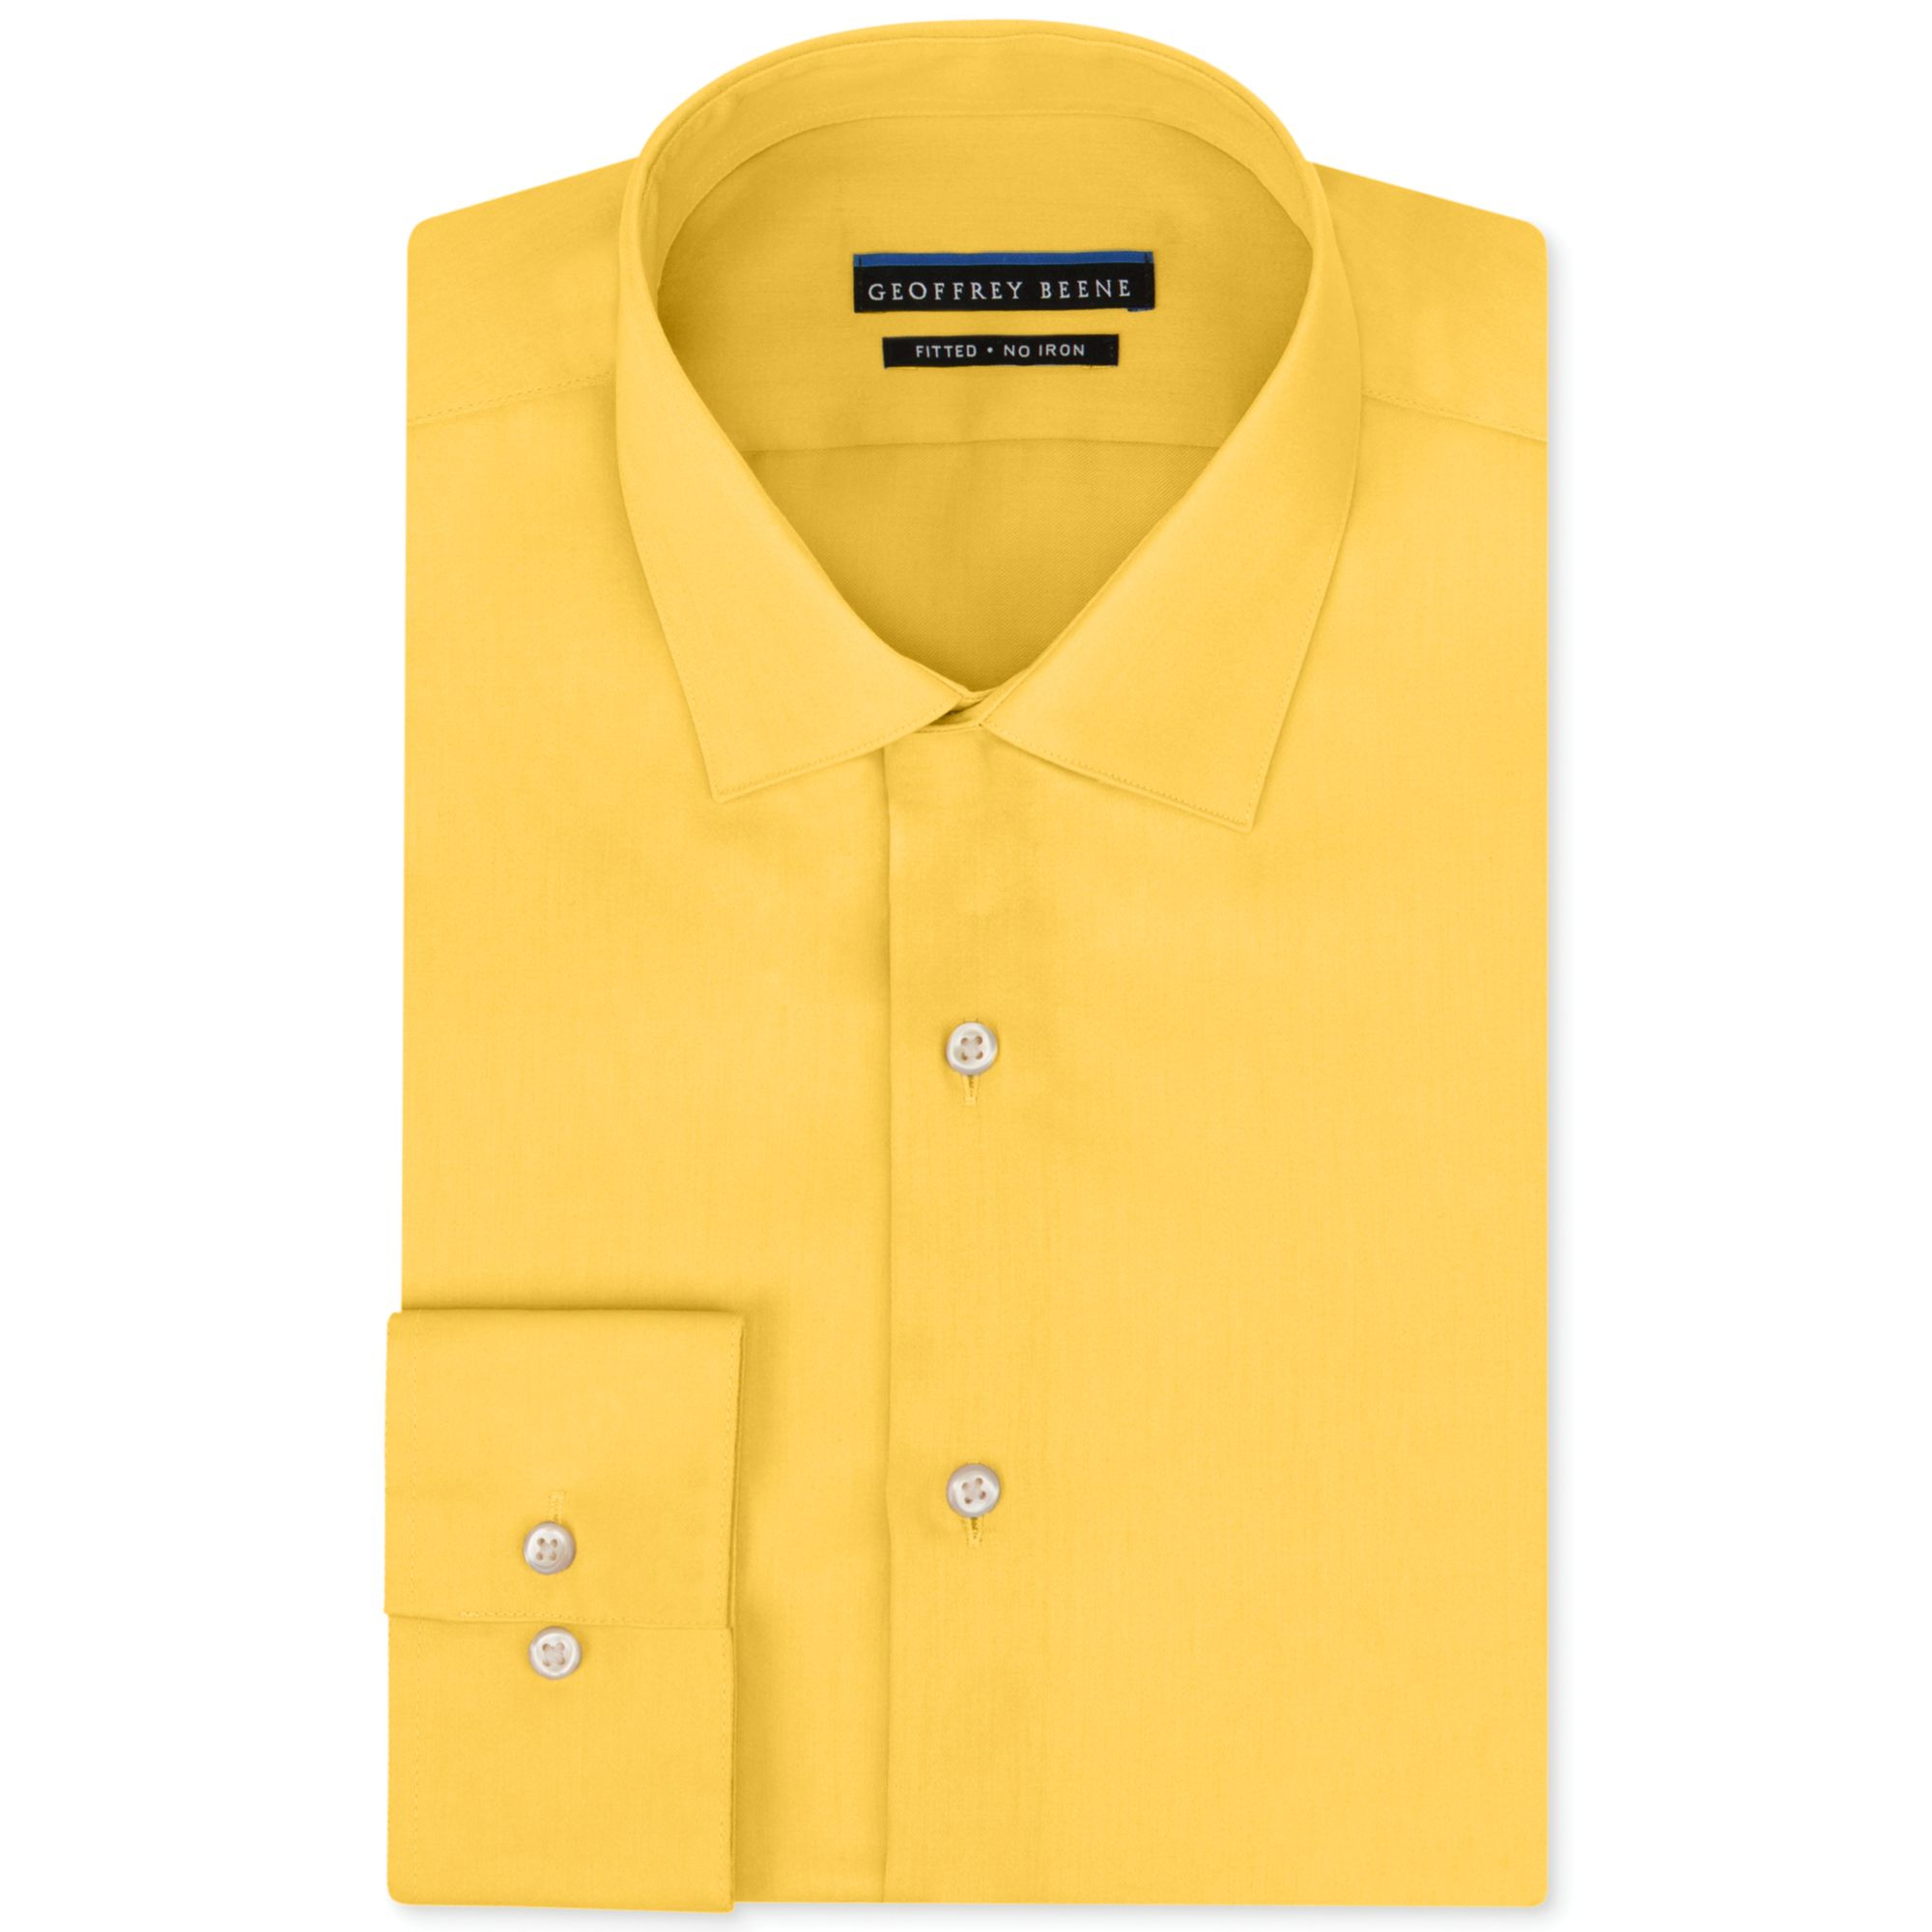 Geoffrey beene noniron fitted stretch sateen solid dress for How to stretch a dress shirt